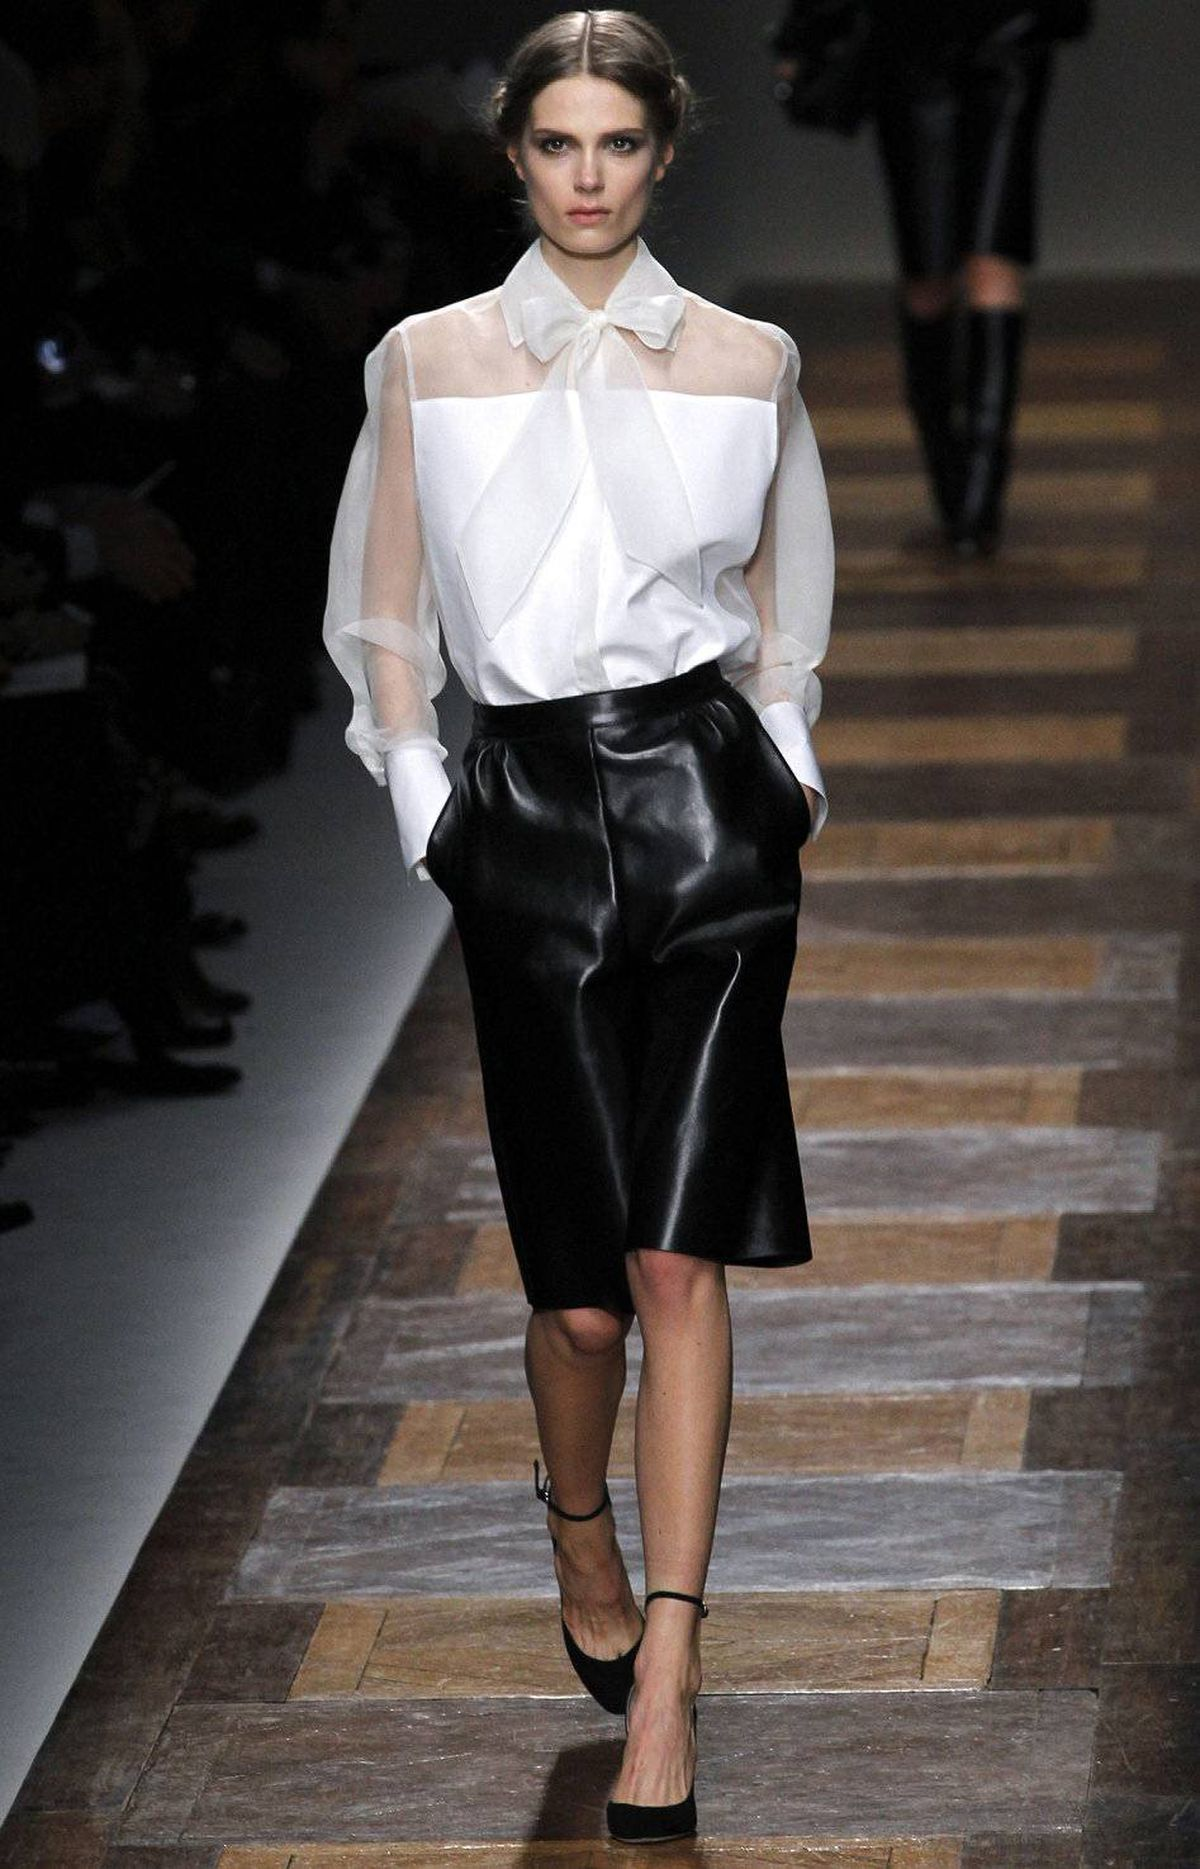 "According to the program notes for the Valentino show, designers Maria Grazia Chiuri and Pierpaolo Piccioli ""indulge in tactile artisan craftsmanship while they reduce a line to its pure architectural essence."" Judging by this outfit, I'd say that's pretty accurate."